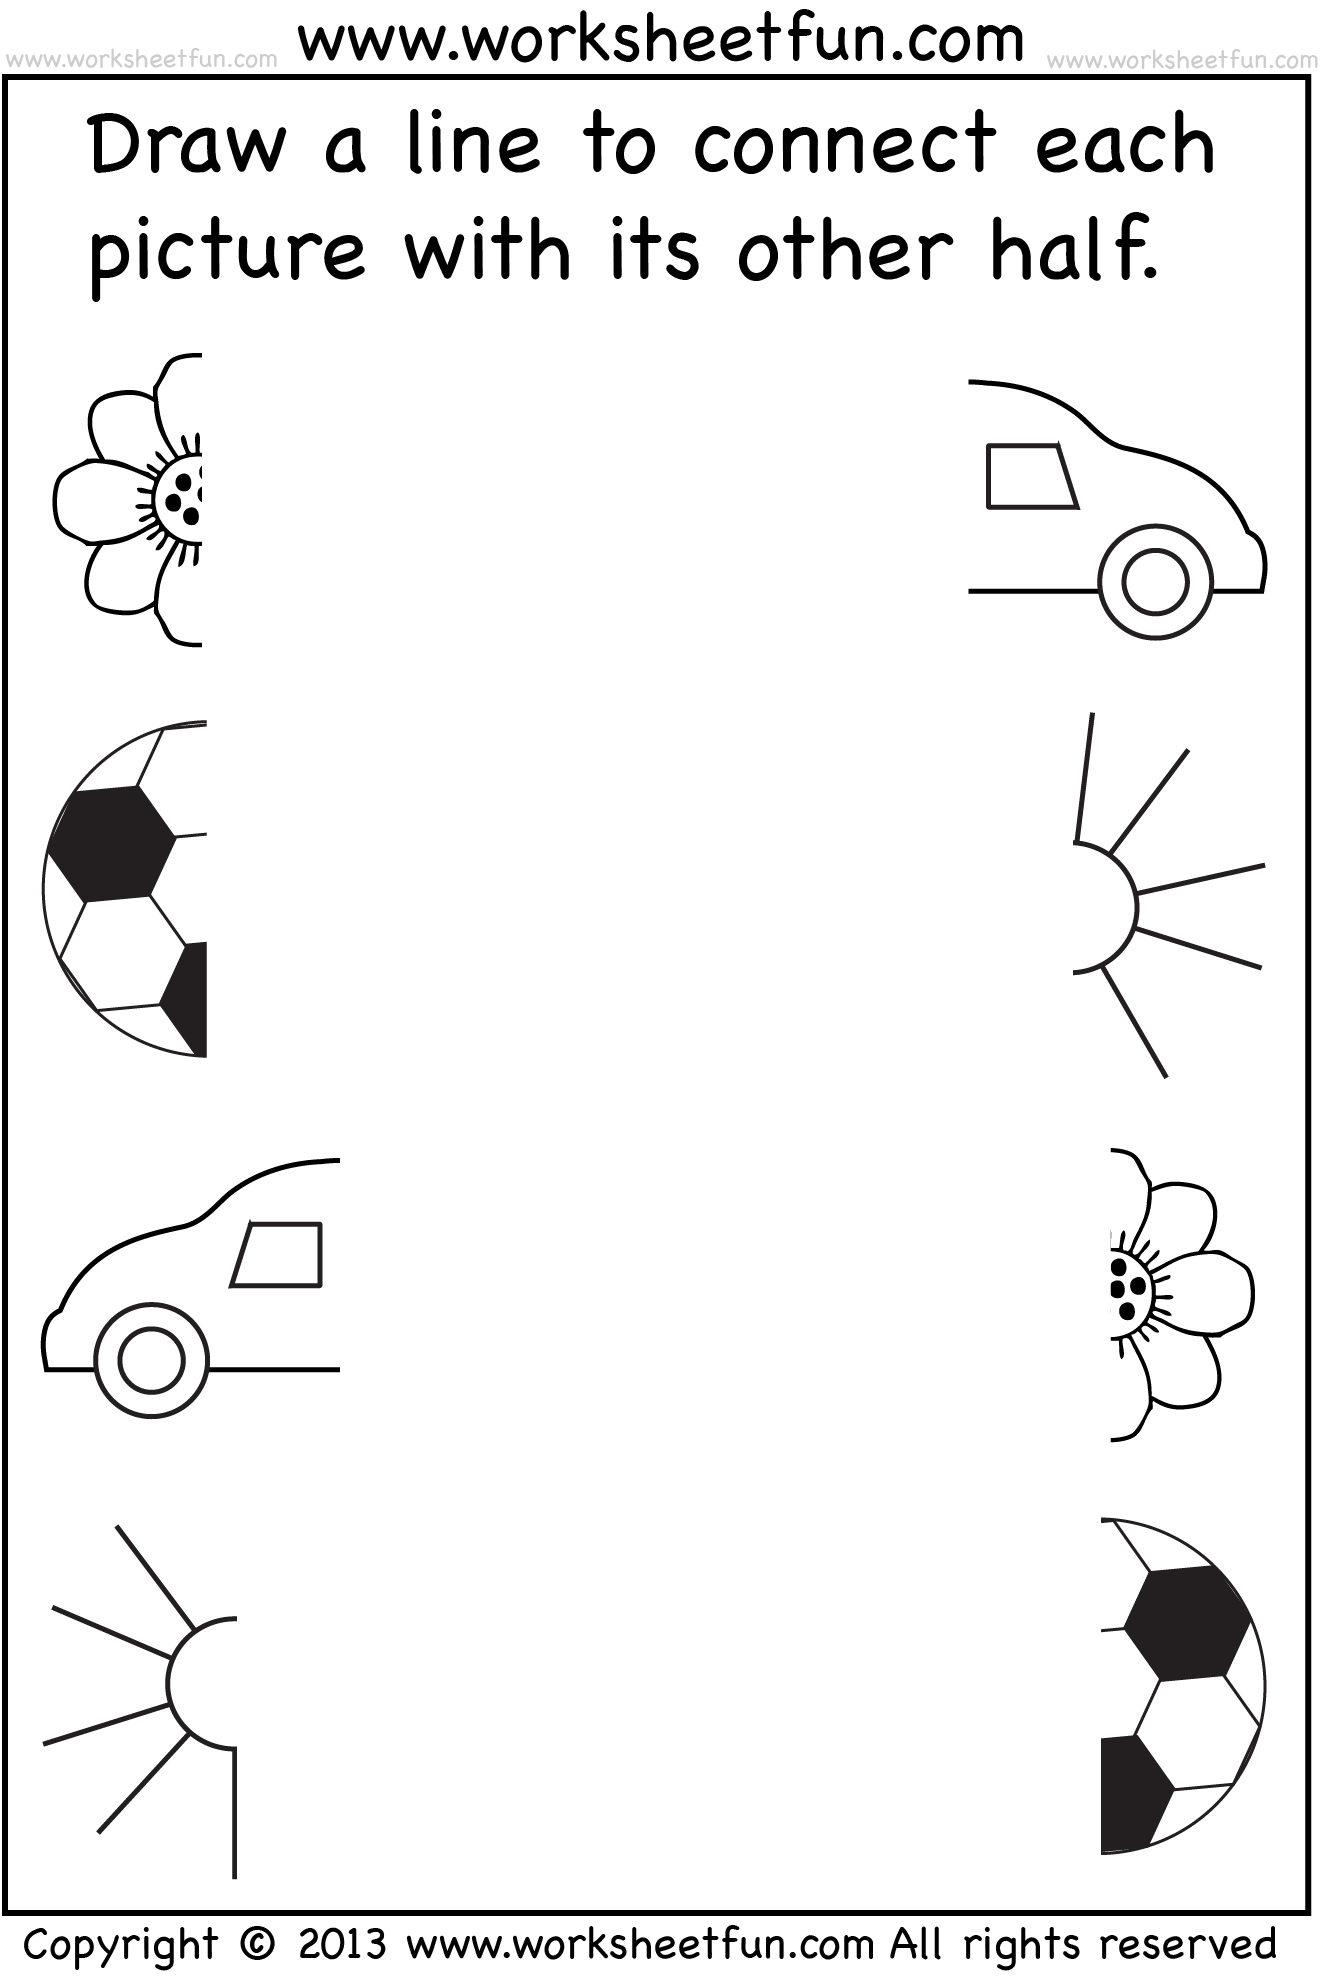 hight resolution of Preschool Worksheets - Connect Pictures - 5 Worksheets   Tarefas para  educação infantil